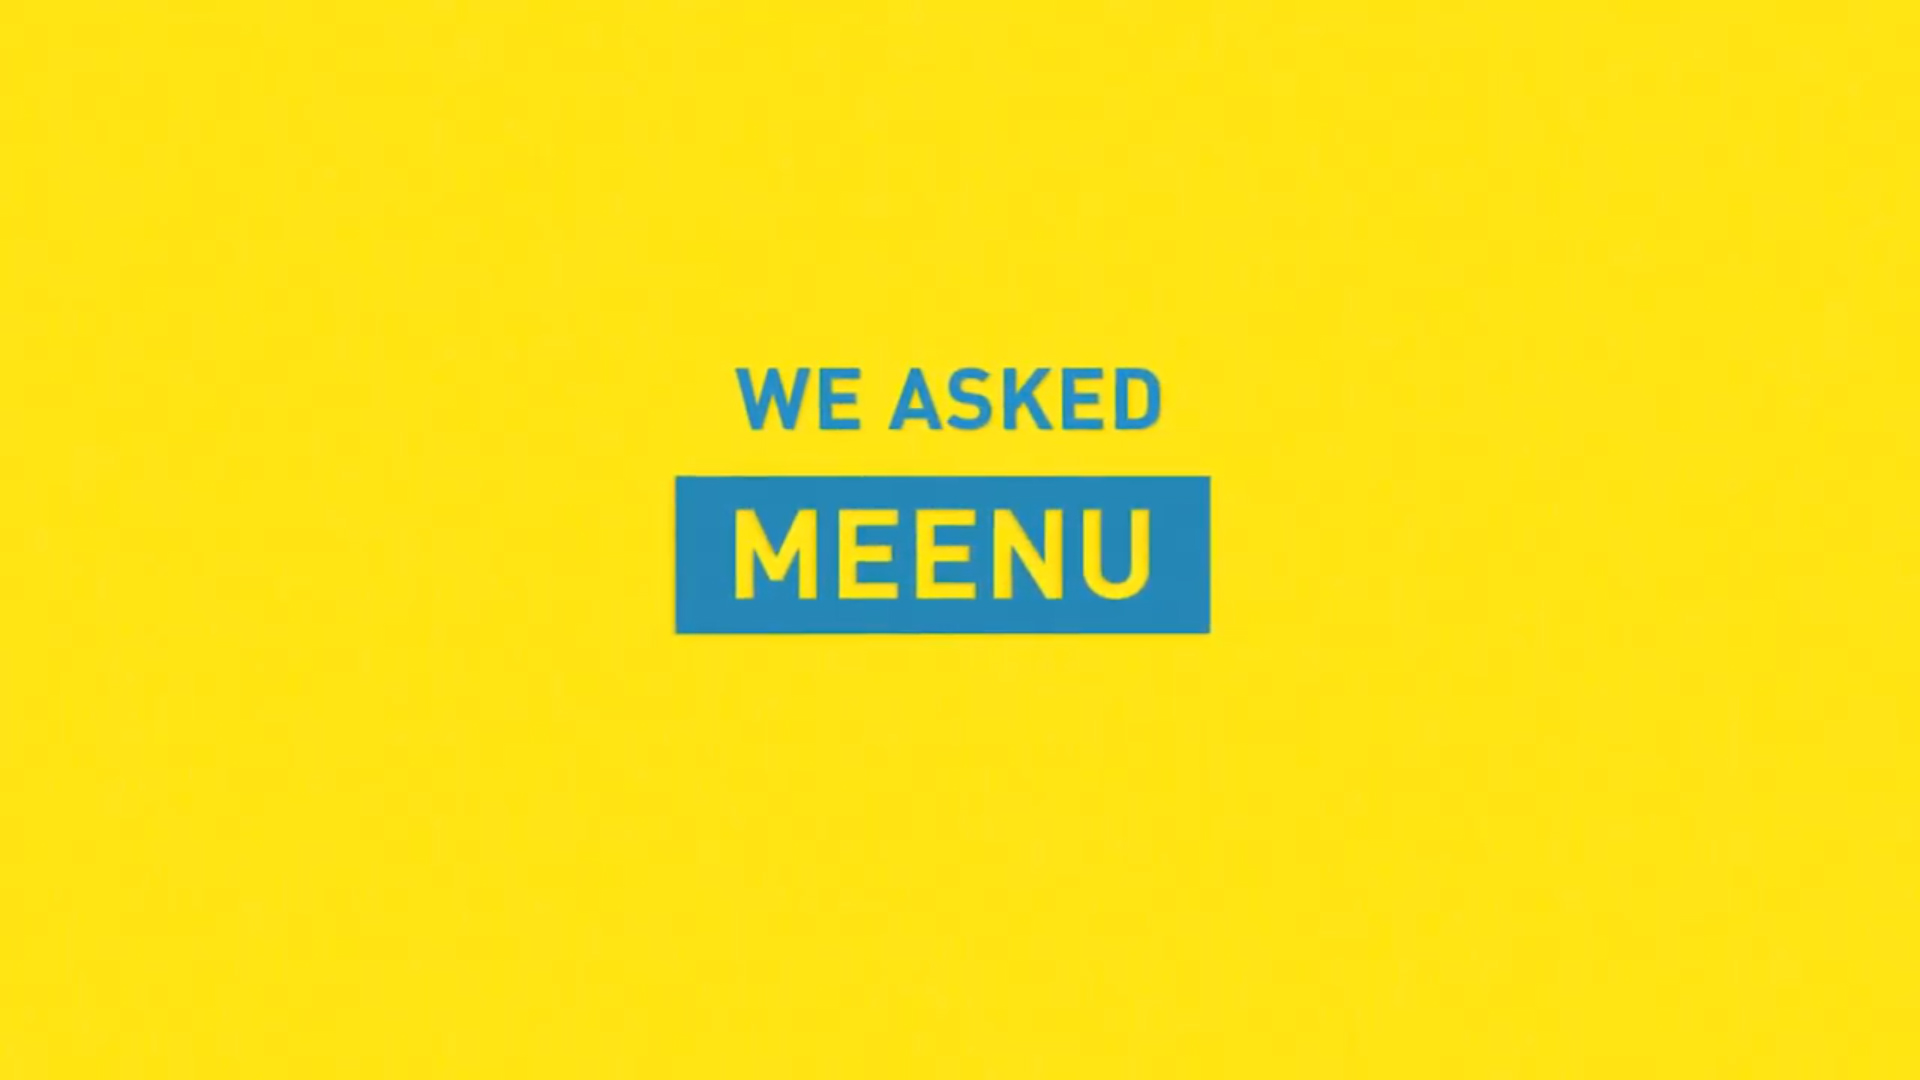 we asked meenu splash image